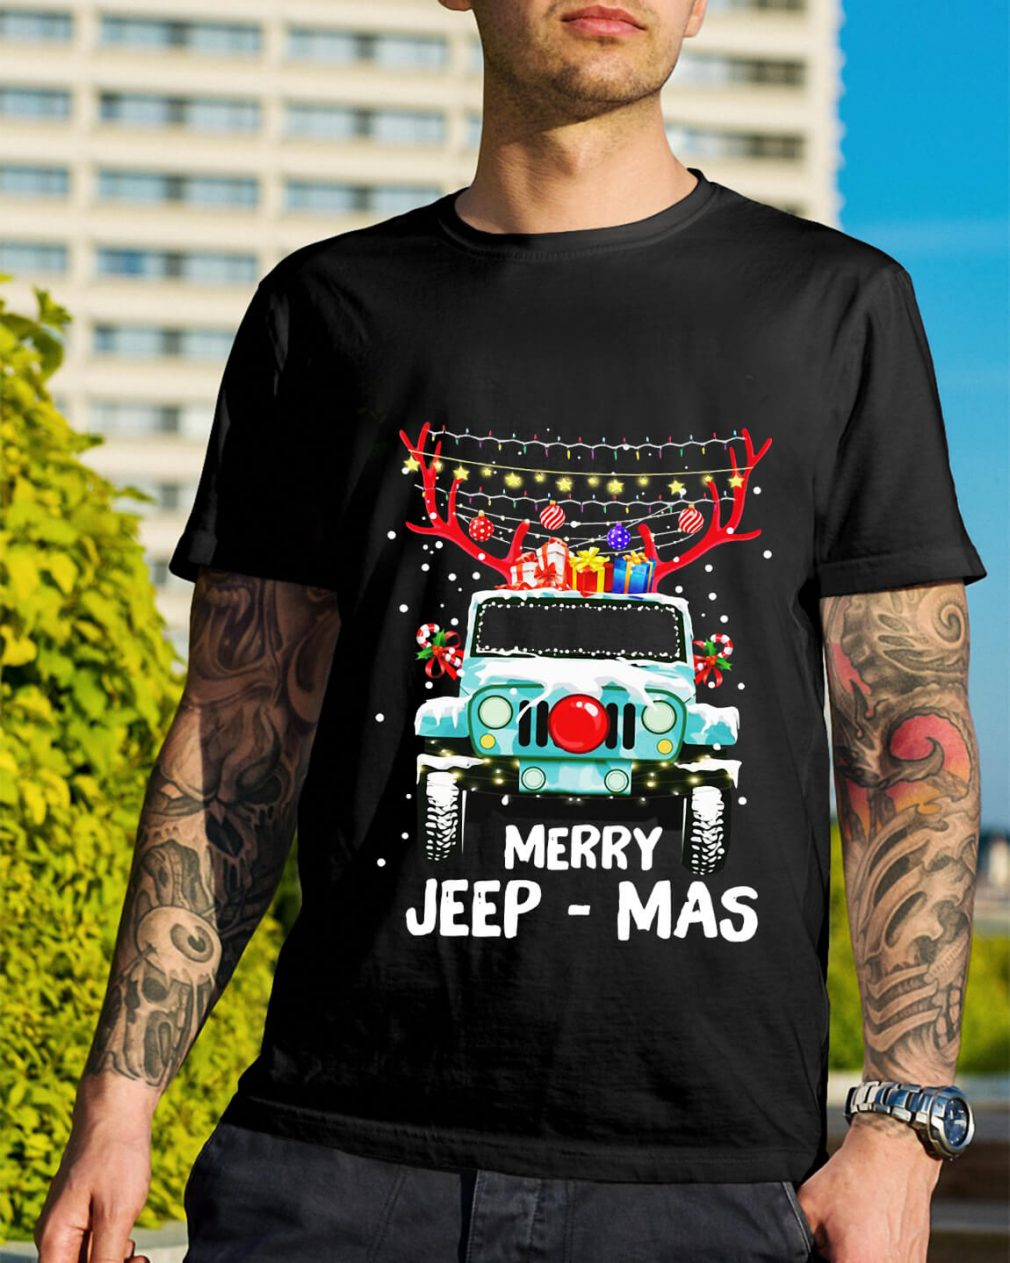 Christmas Merry Jeep-Mas shirt